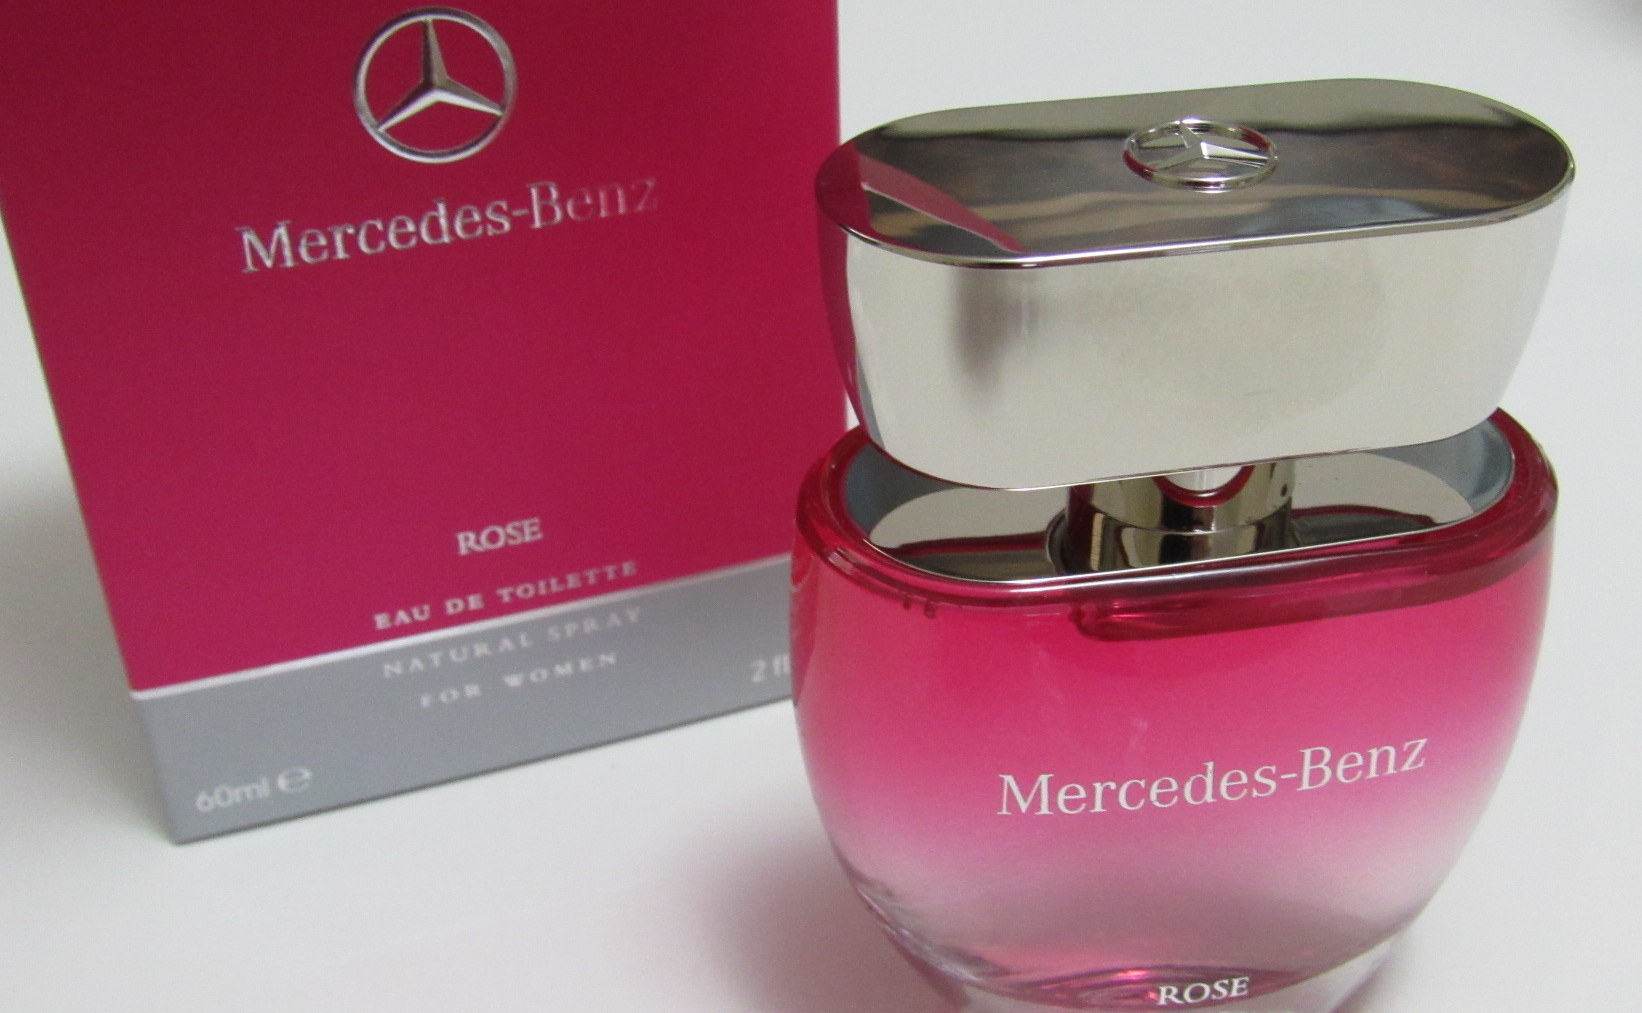 mercedes benz rose for women fragrancemarket. Black Bedroom Furniture Sets. Home Design Ideas